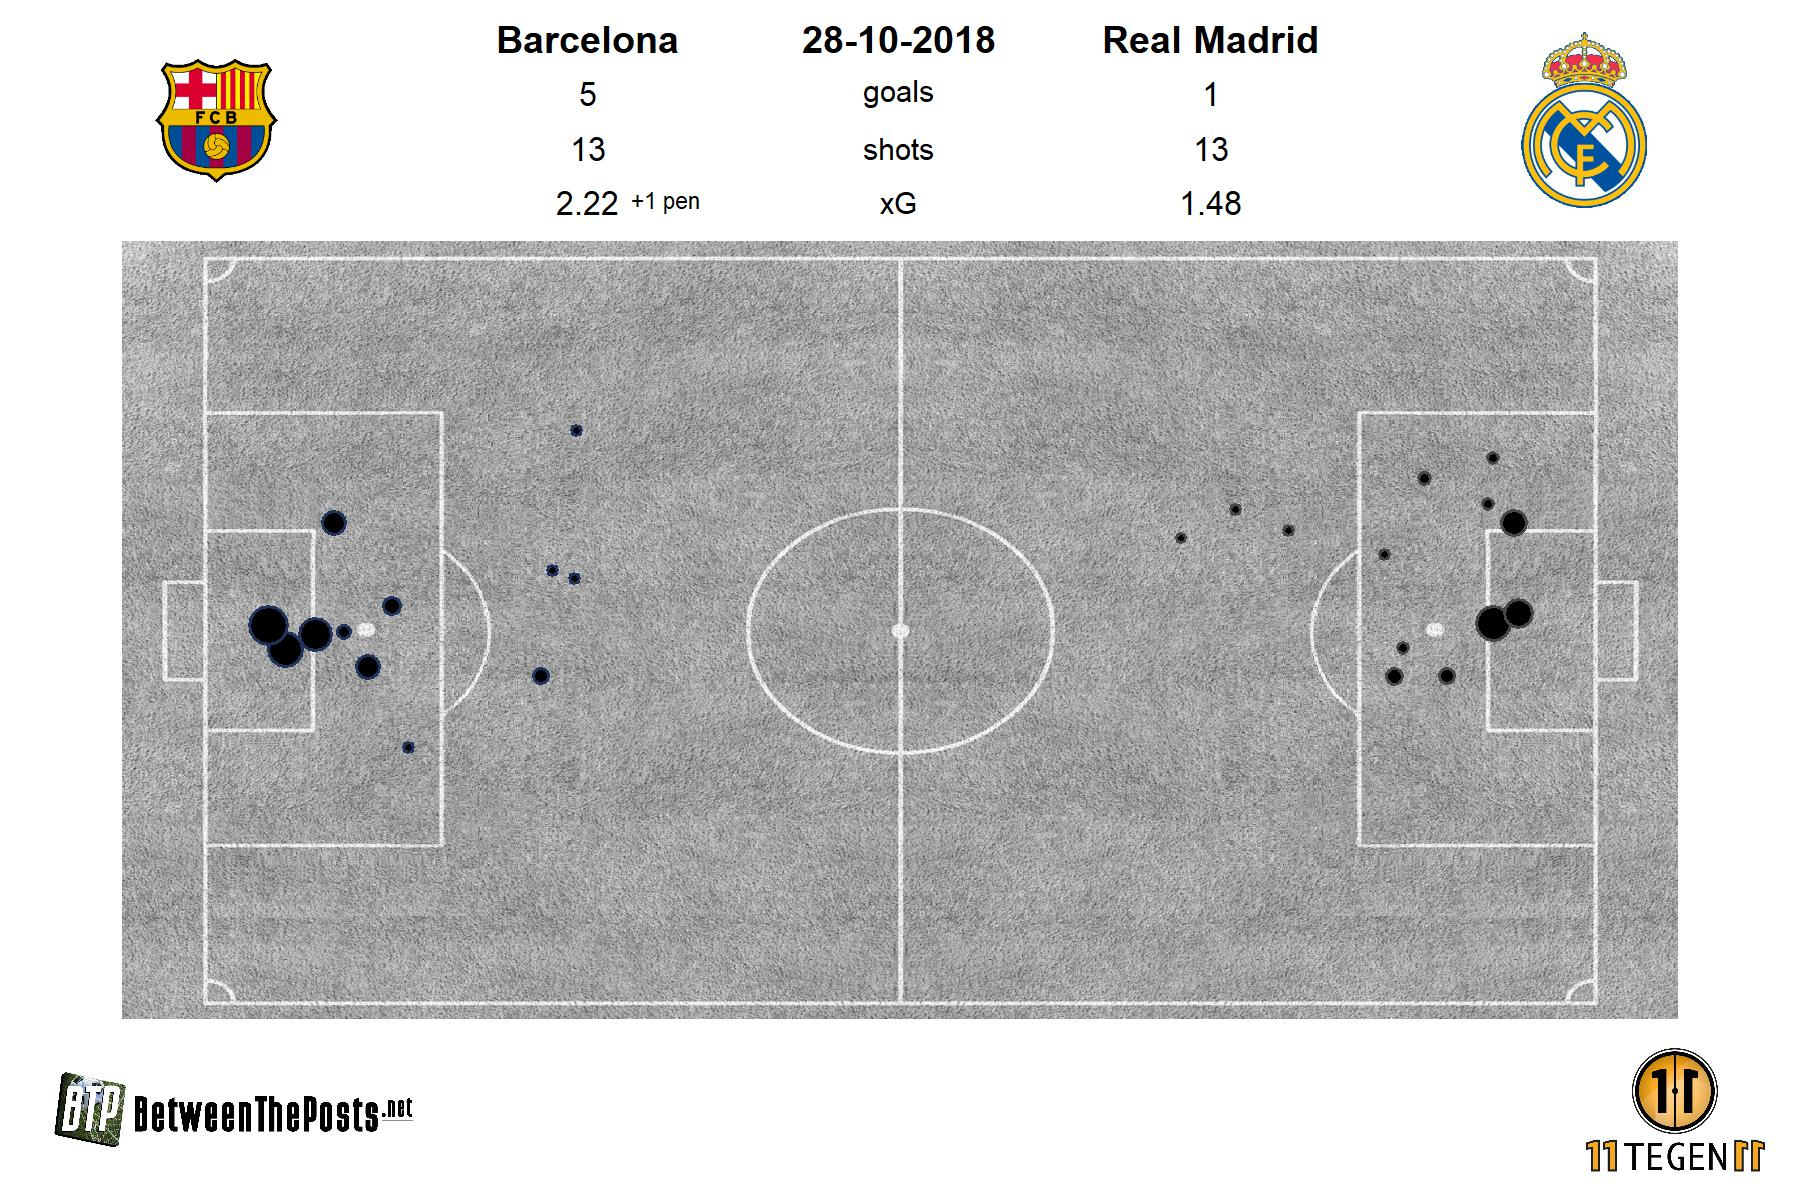 2018-10-28-barcelona-pitch-plot-barcelona-5-1-real-madrid.jpg